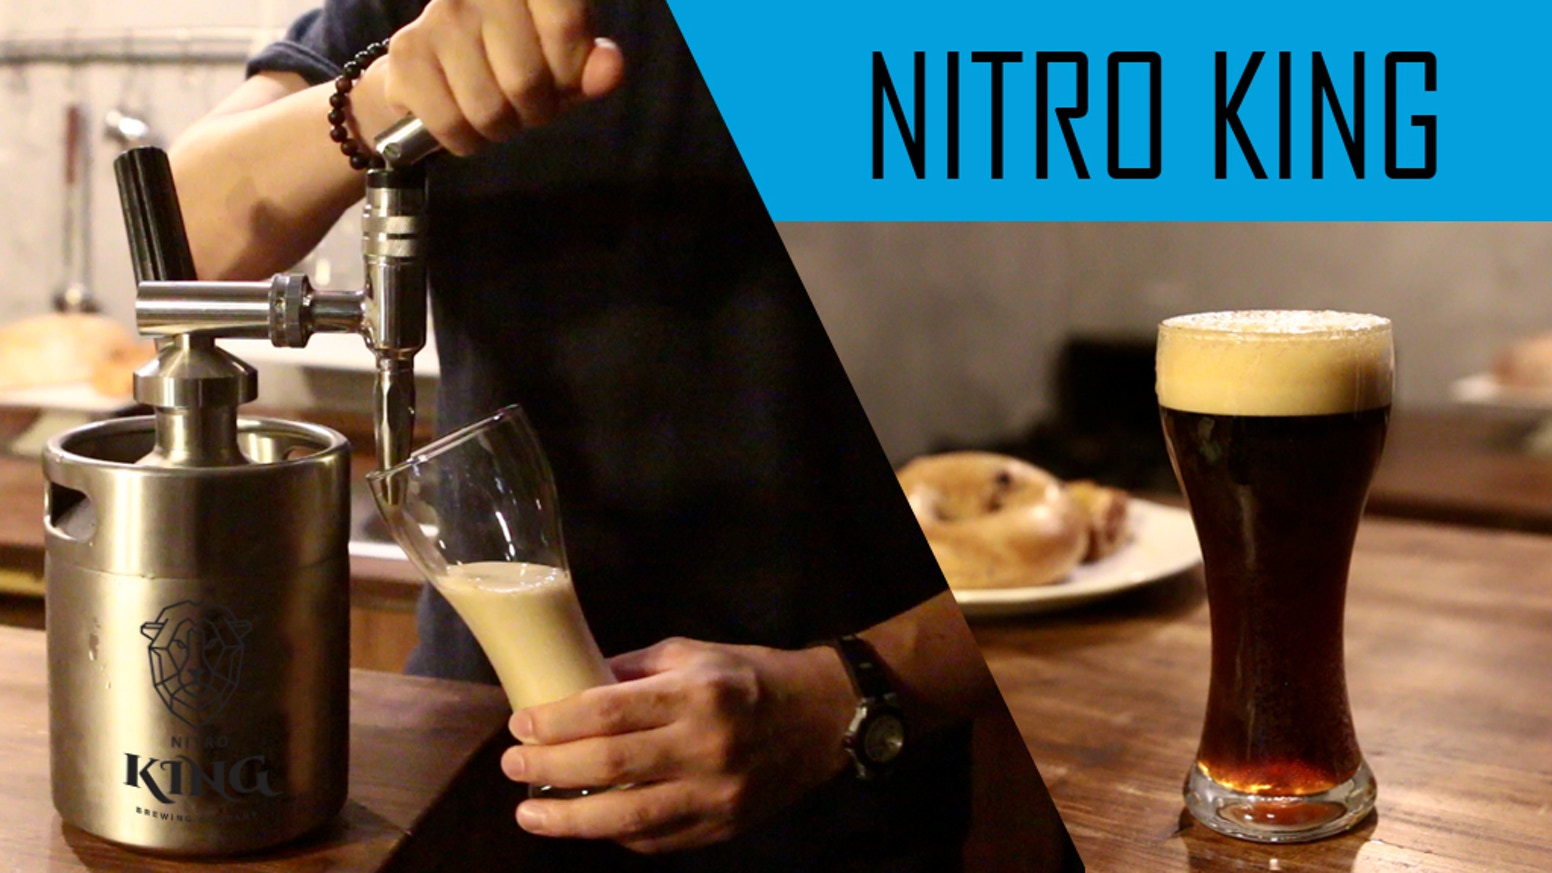 Nitro King Make Cold Brew Coffee Easily At Home By Brewing Diy Motorized Grain Mill Page 3 Forums Makes You Enjoy With Rich Flavor And The Texture Of